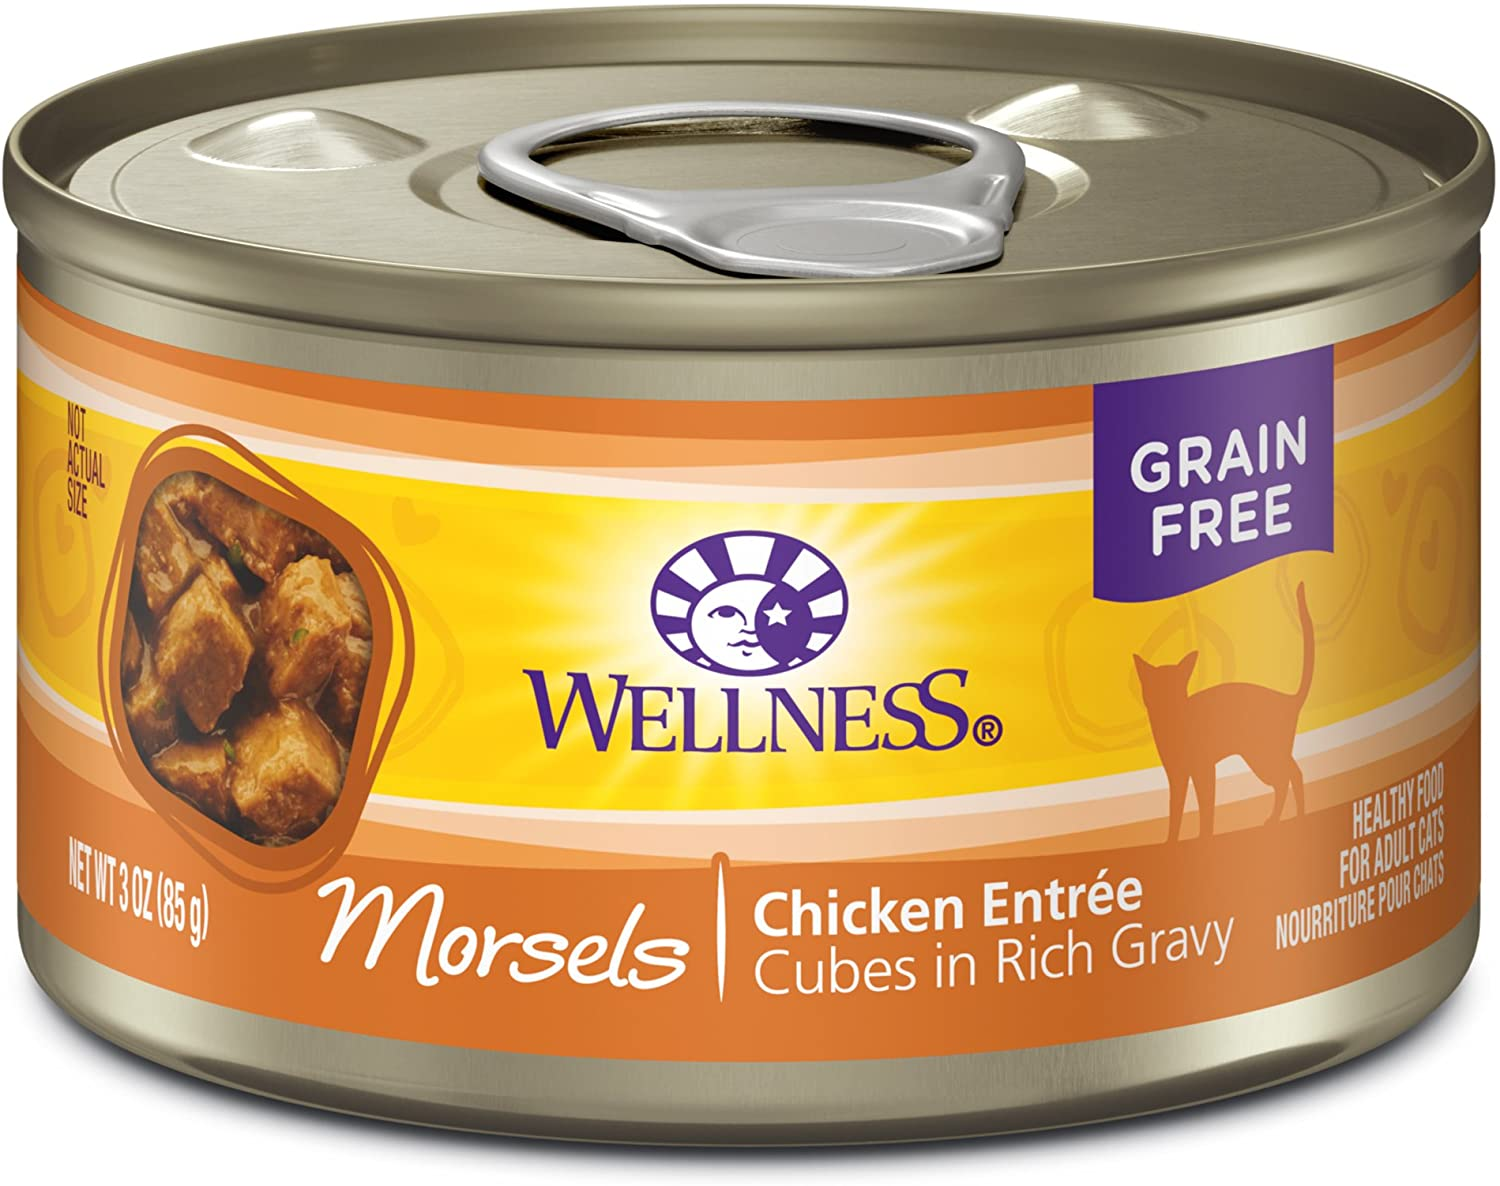 Wellness Complete Health Natural Grain Free Wet Canned Cat Food, Cubed Chicken Entree, 3-Ounce Can (Pack of 24)